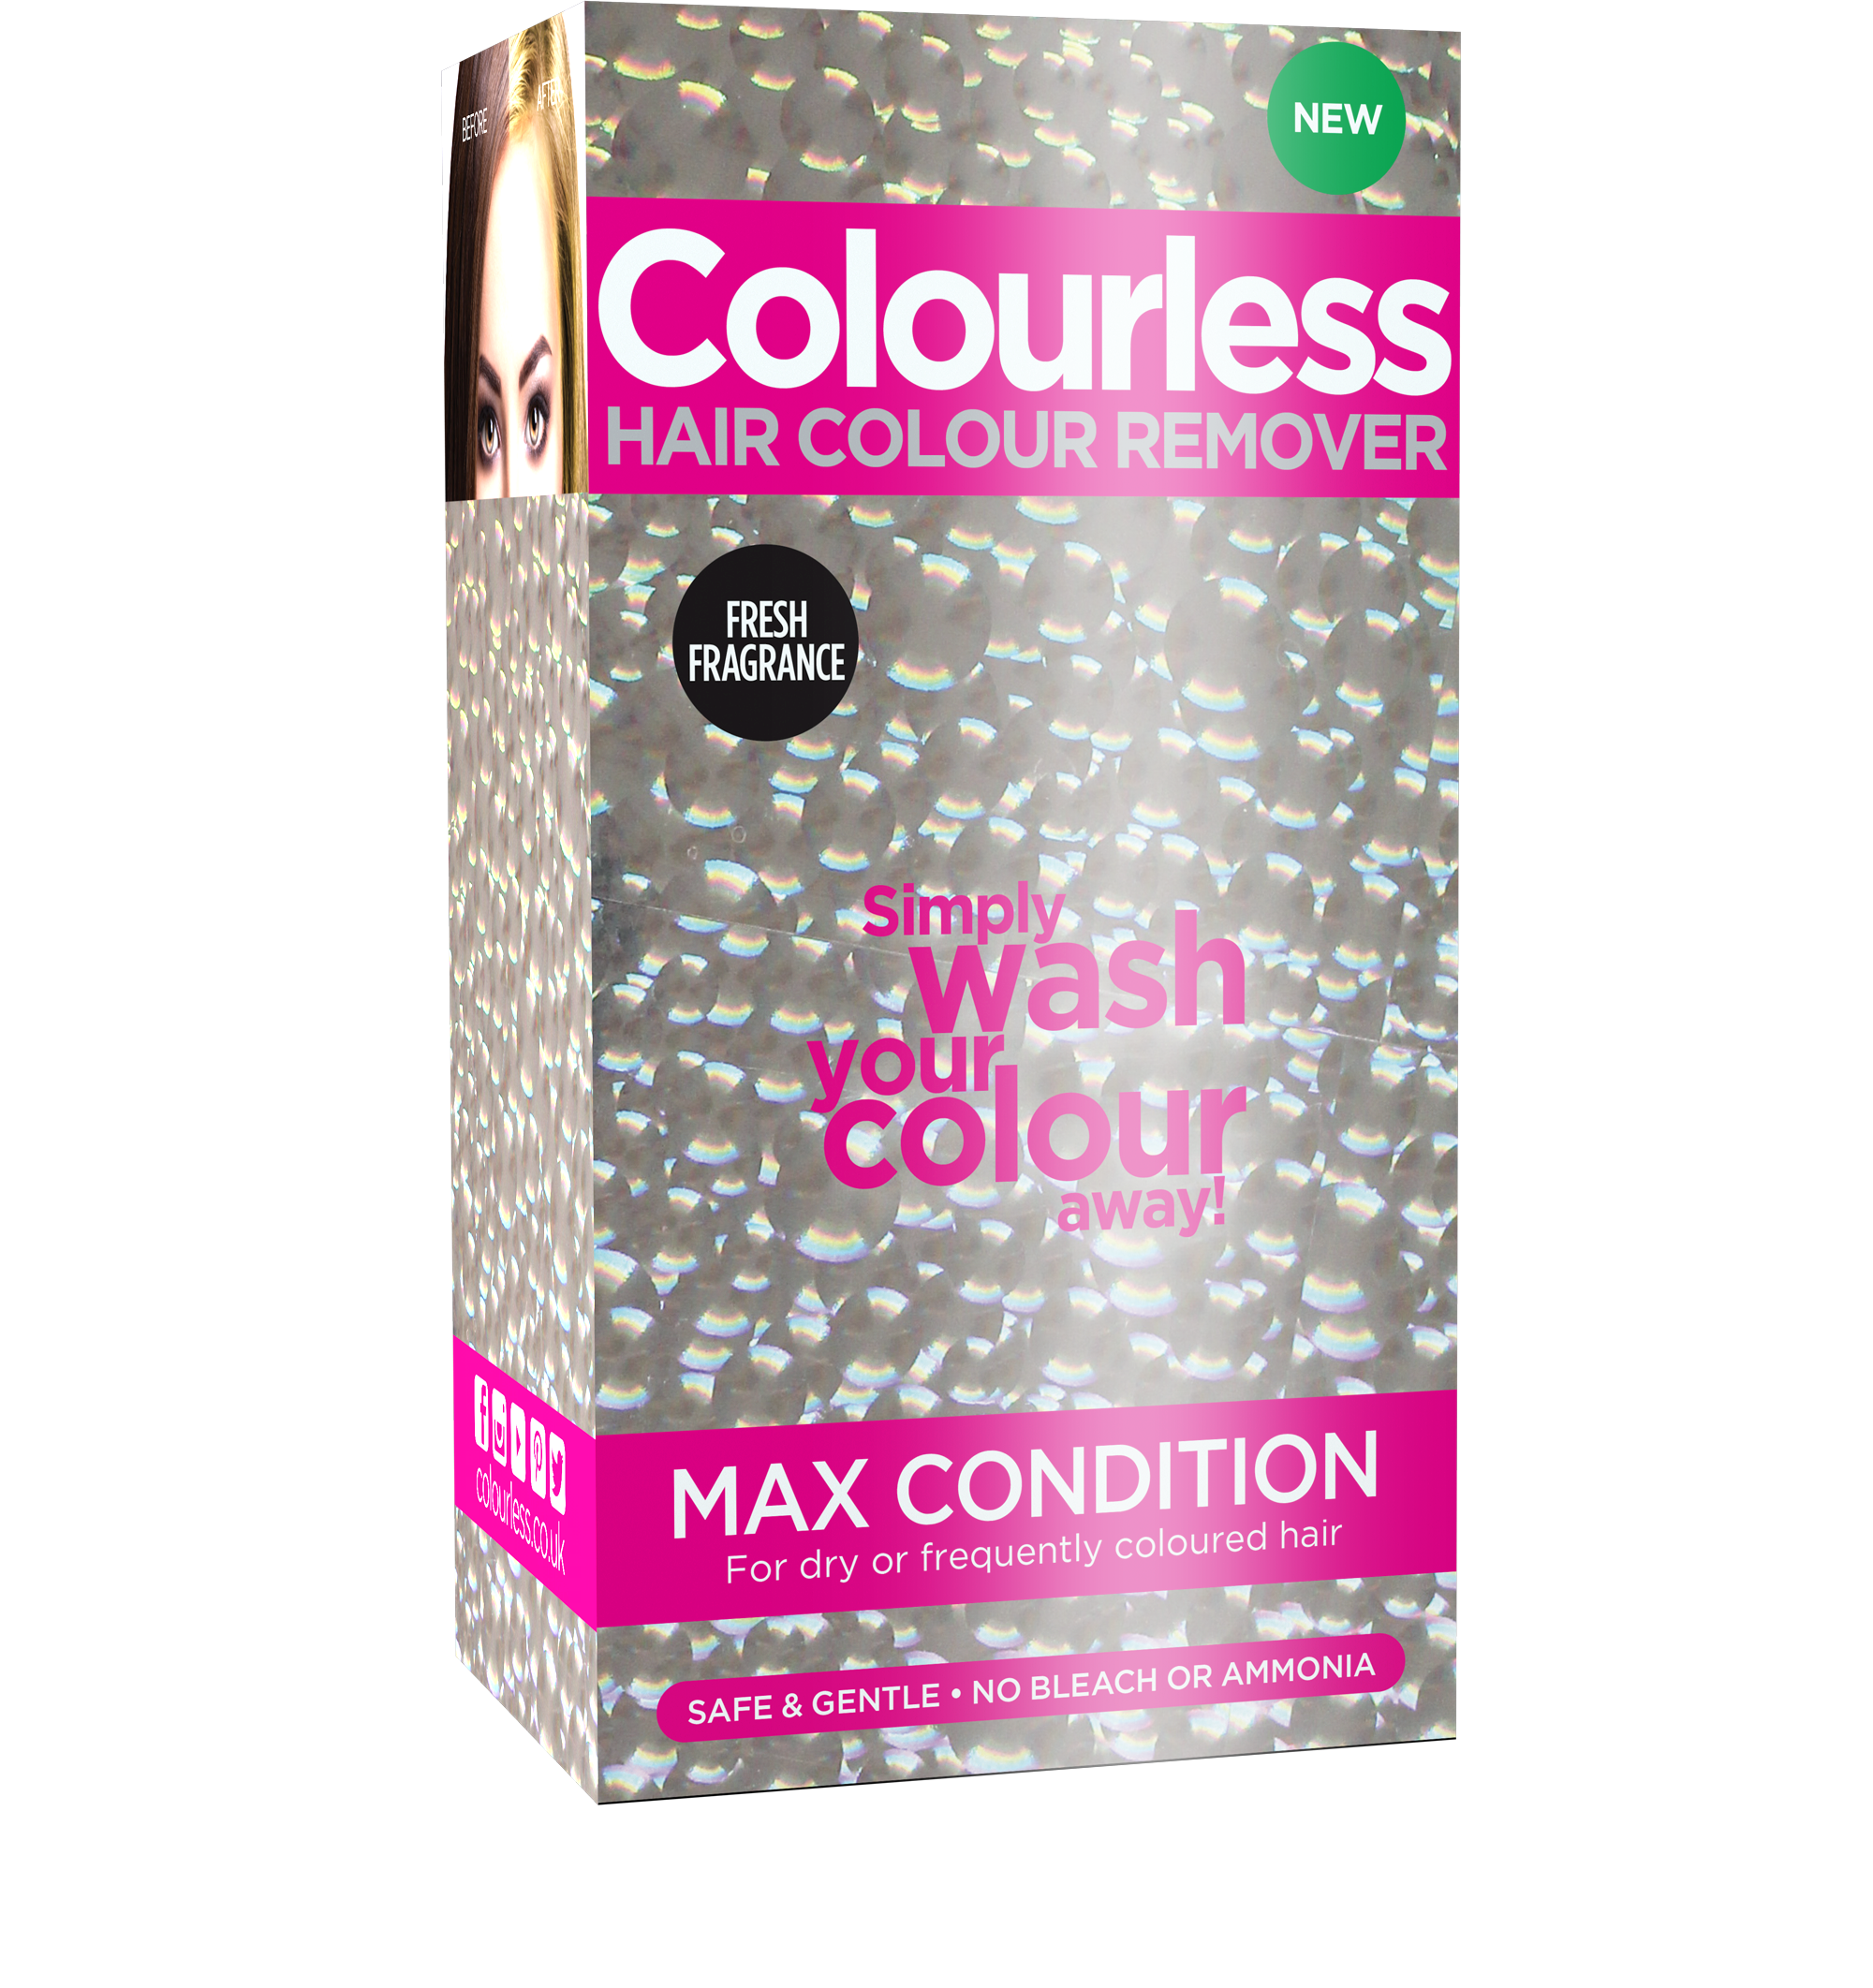 Colourless hair colour remover max conditioning colourless max condition solutioingenieria Gallery